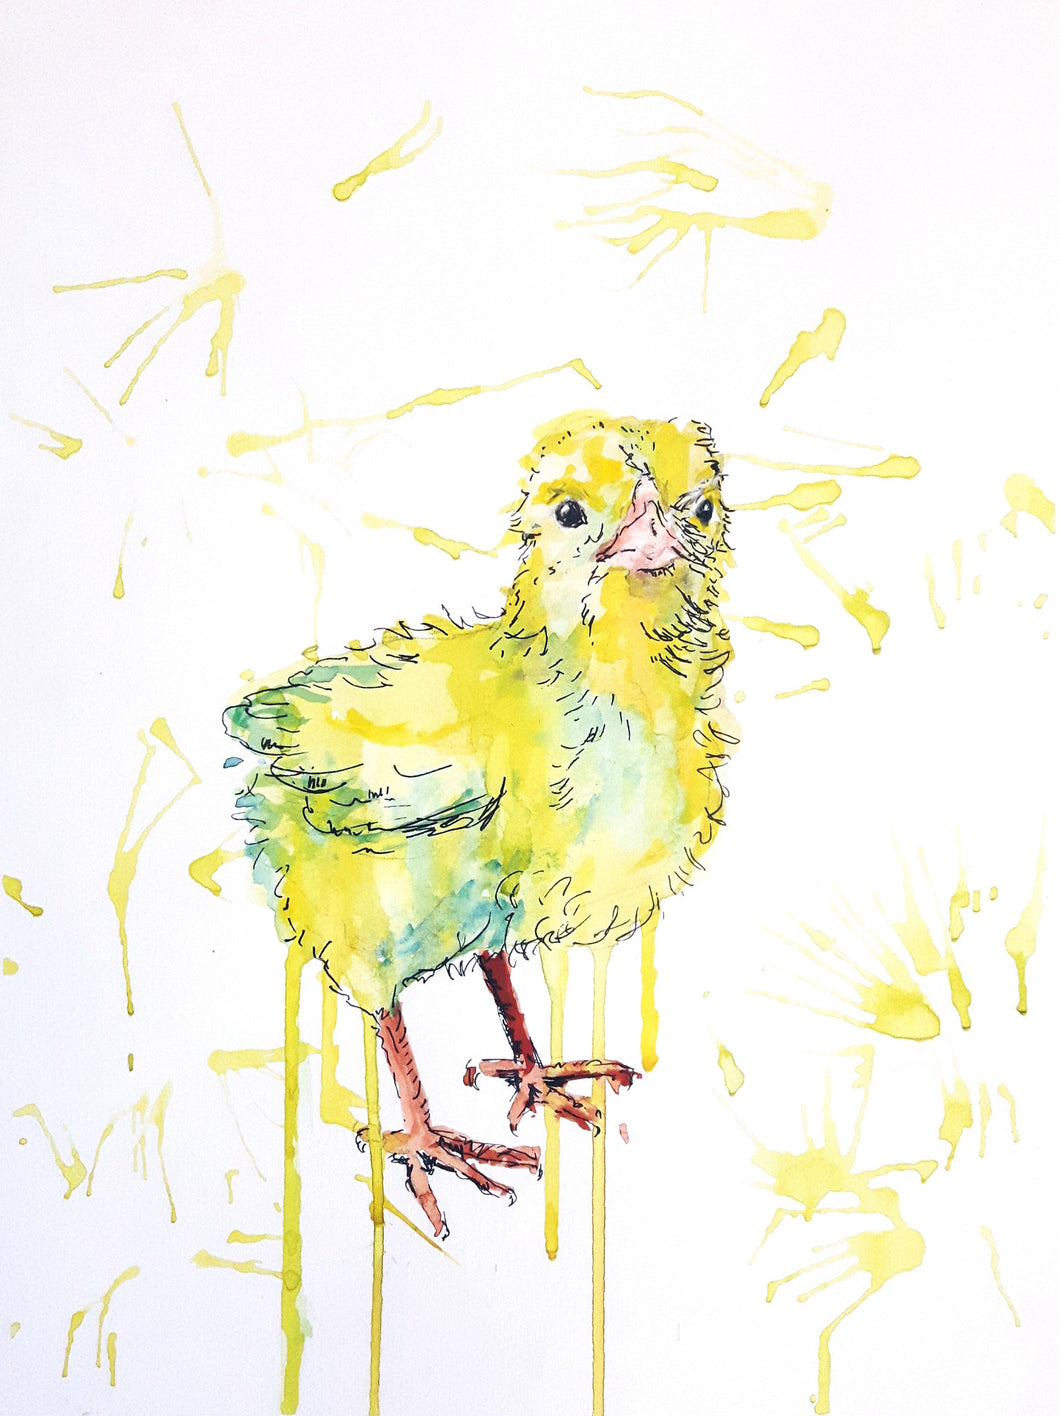 chick,Easter,bird,bird painting,artwork,yellow bird